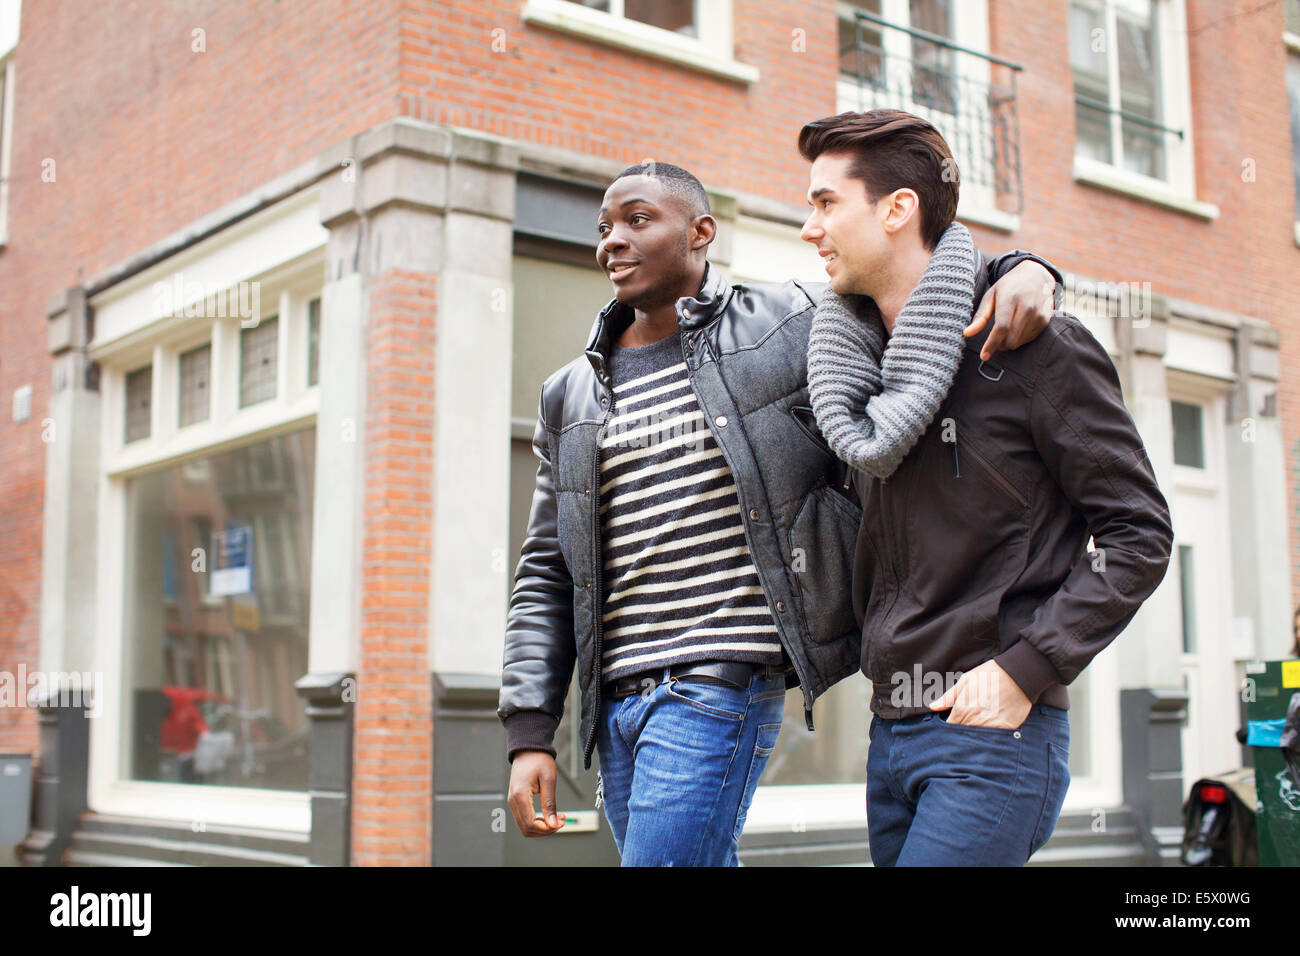 Two young men strolling down the street with arms around each other - Stock Image